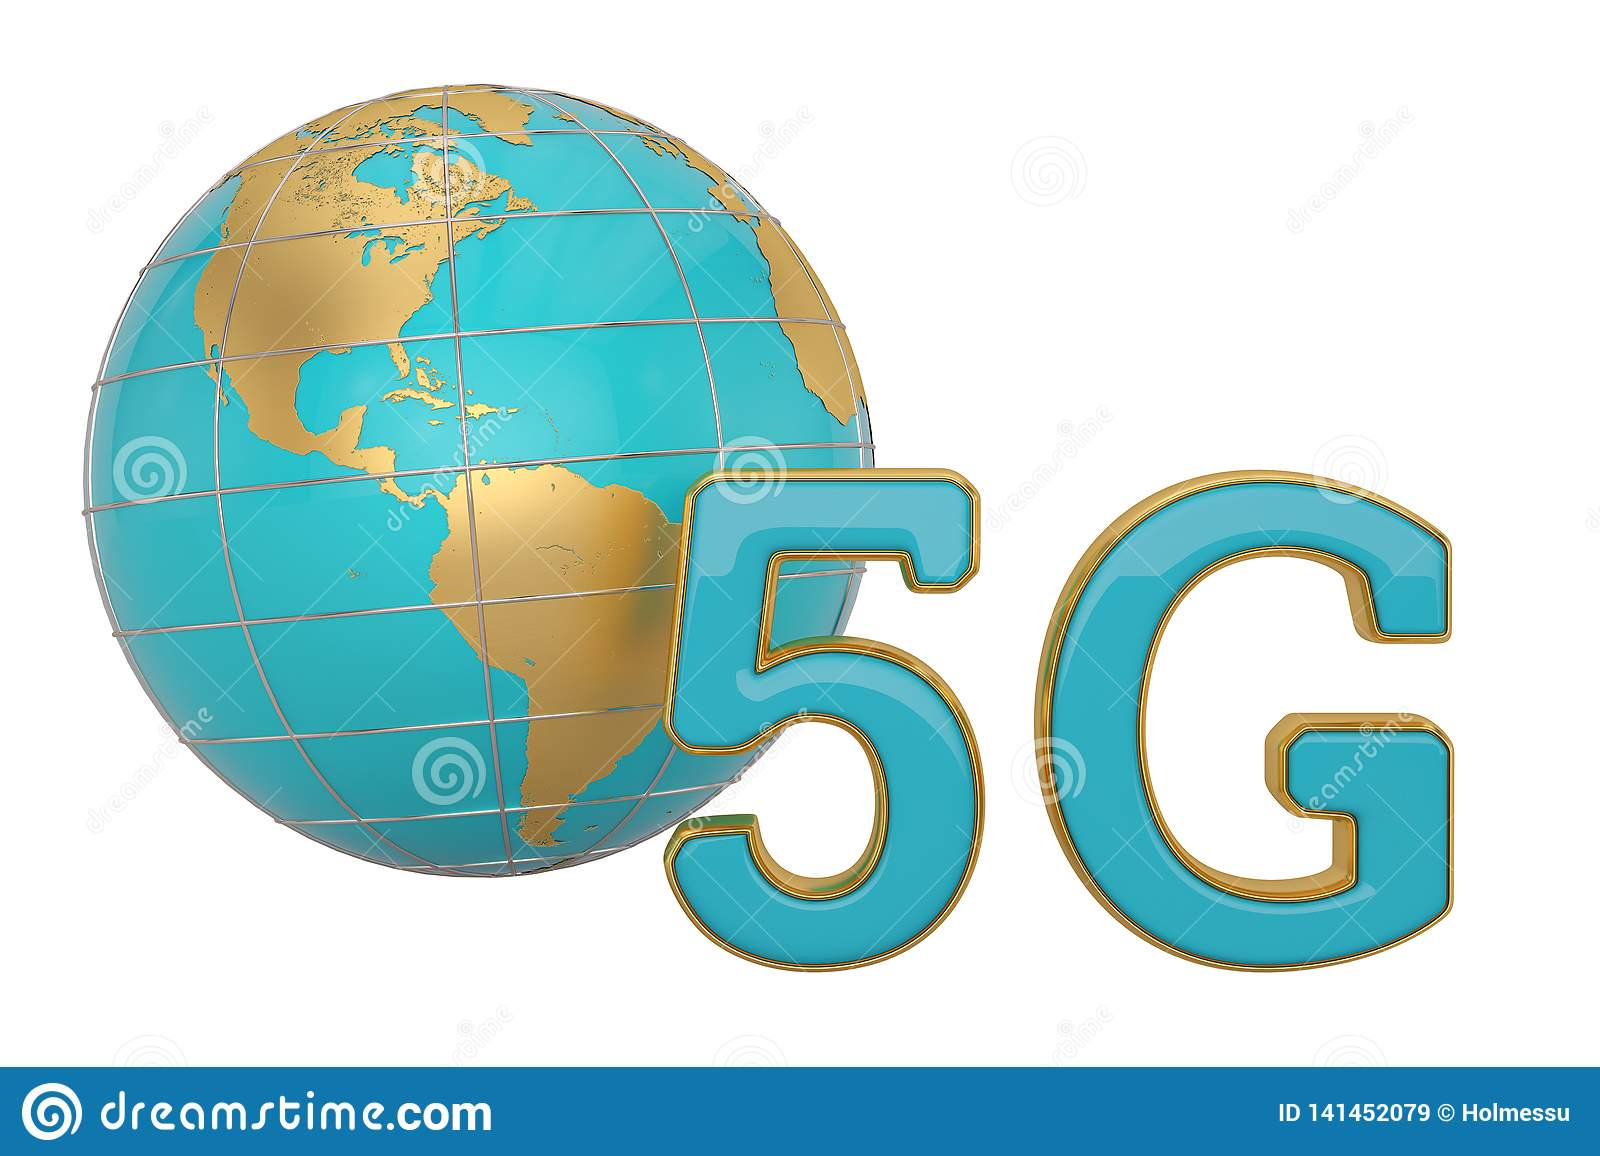 5G Wireless Network Icon And Globe  3D Illustration Stock